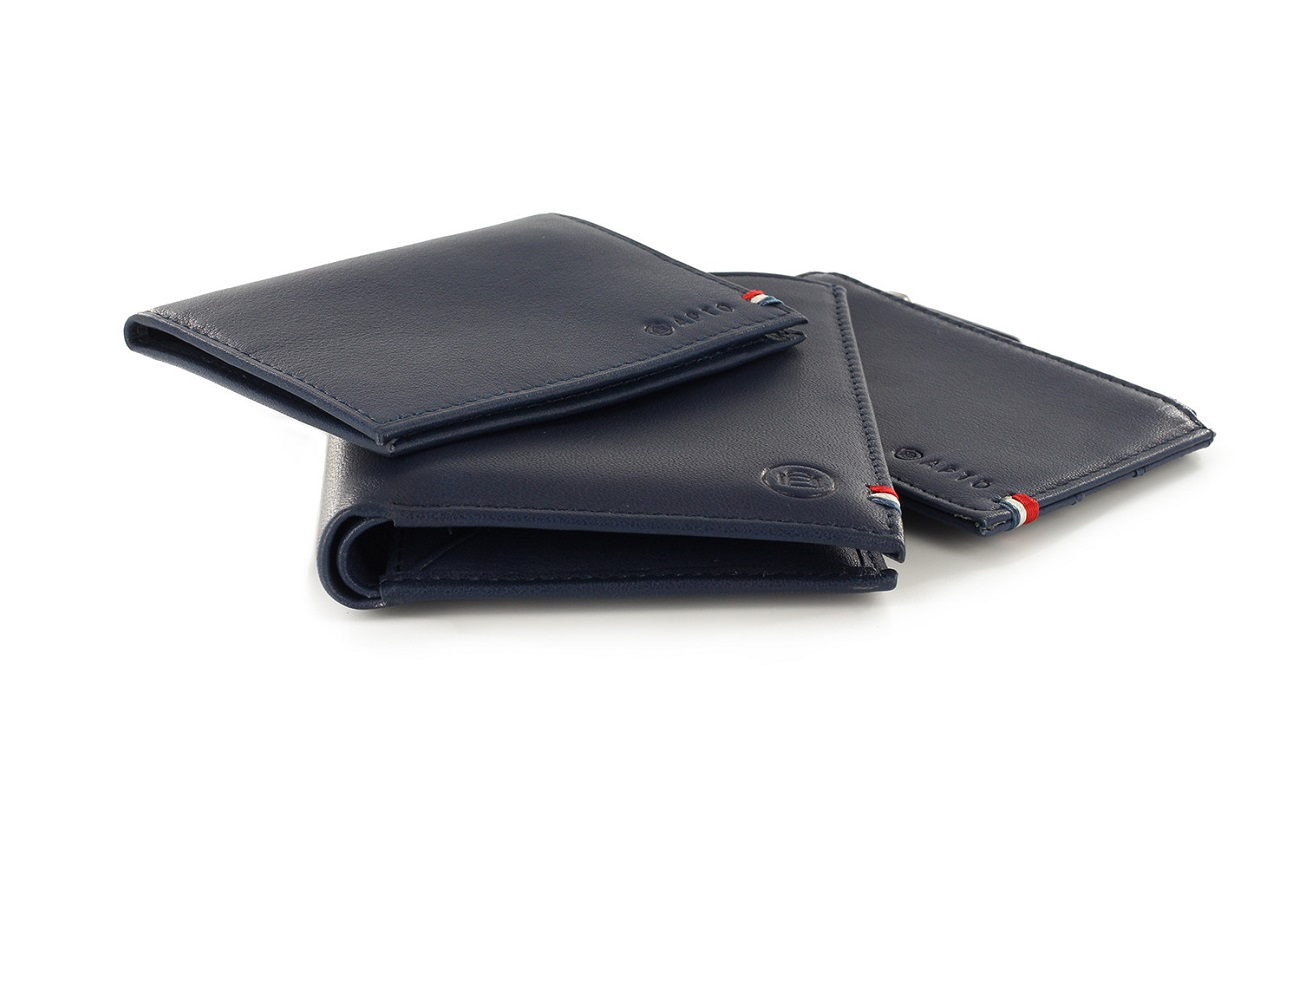 The Instant Wallet – The Unique 3 In 1 Modular Wallet